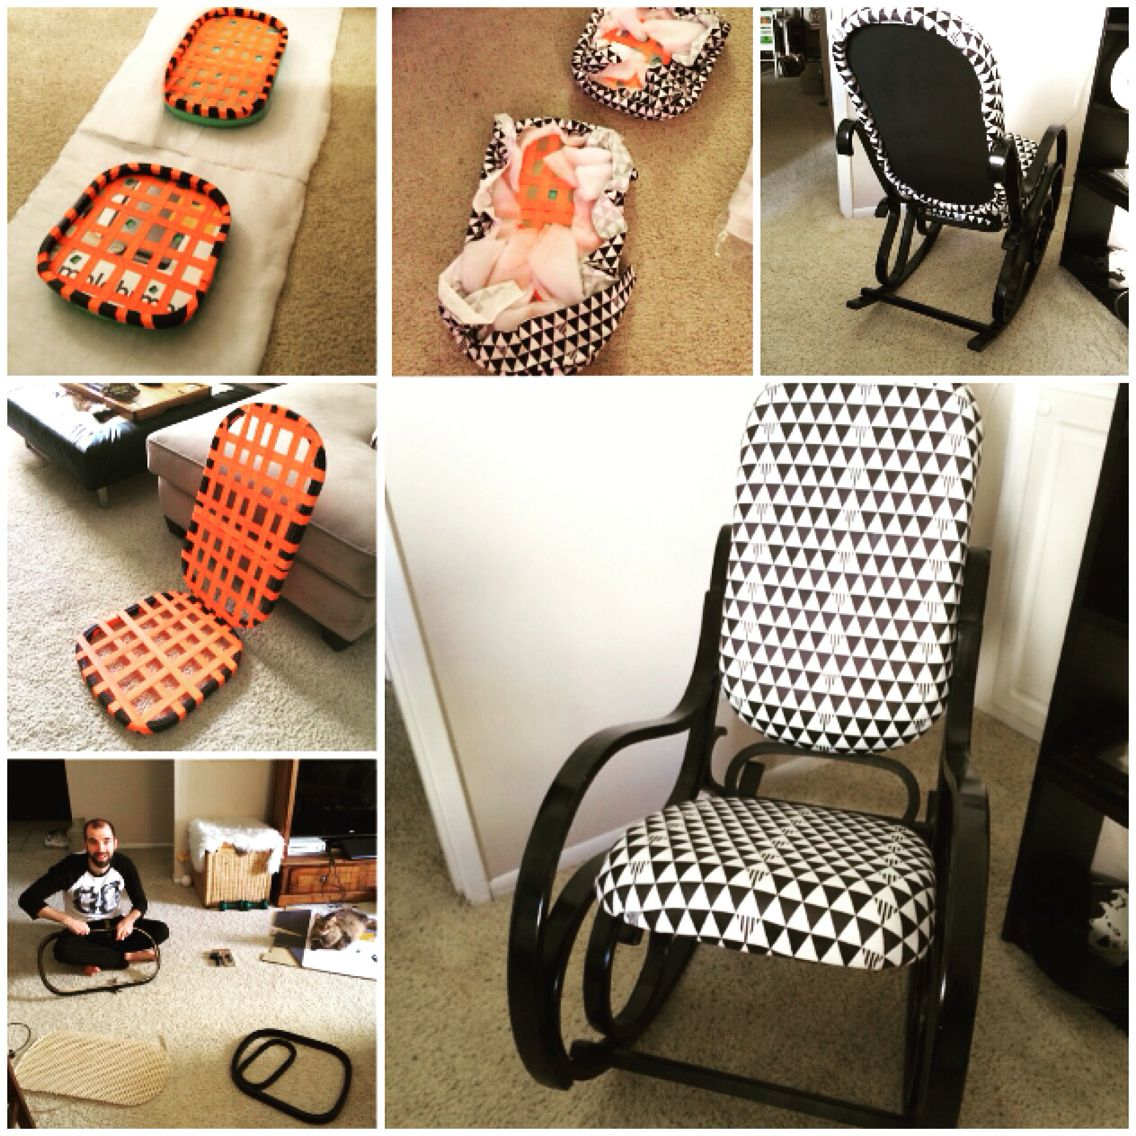 Bentwood rocking chair makeover - Vintage Thonet Bentwood Rocking Chair Makeover Perfect For The Nursery